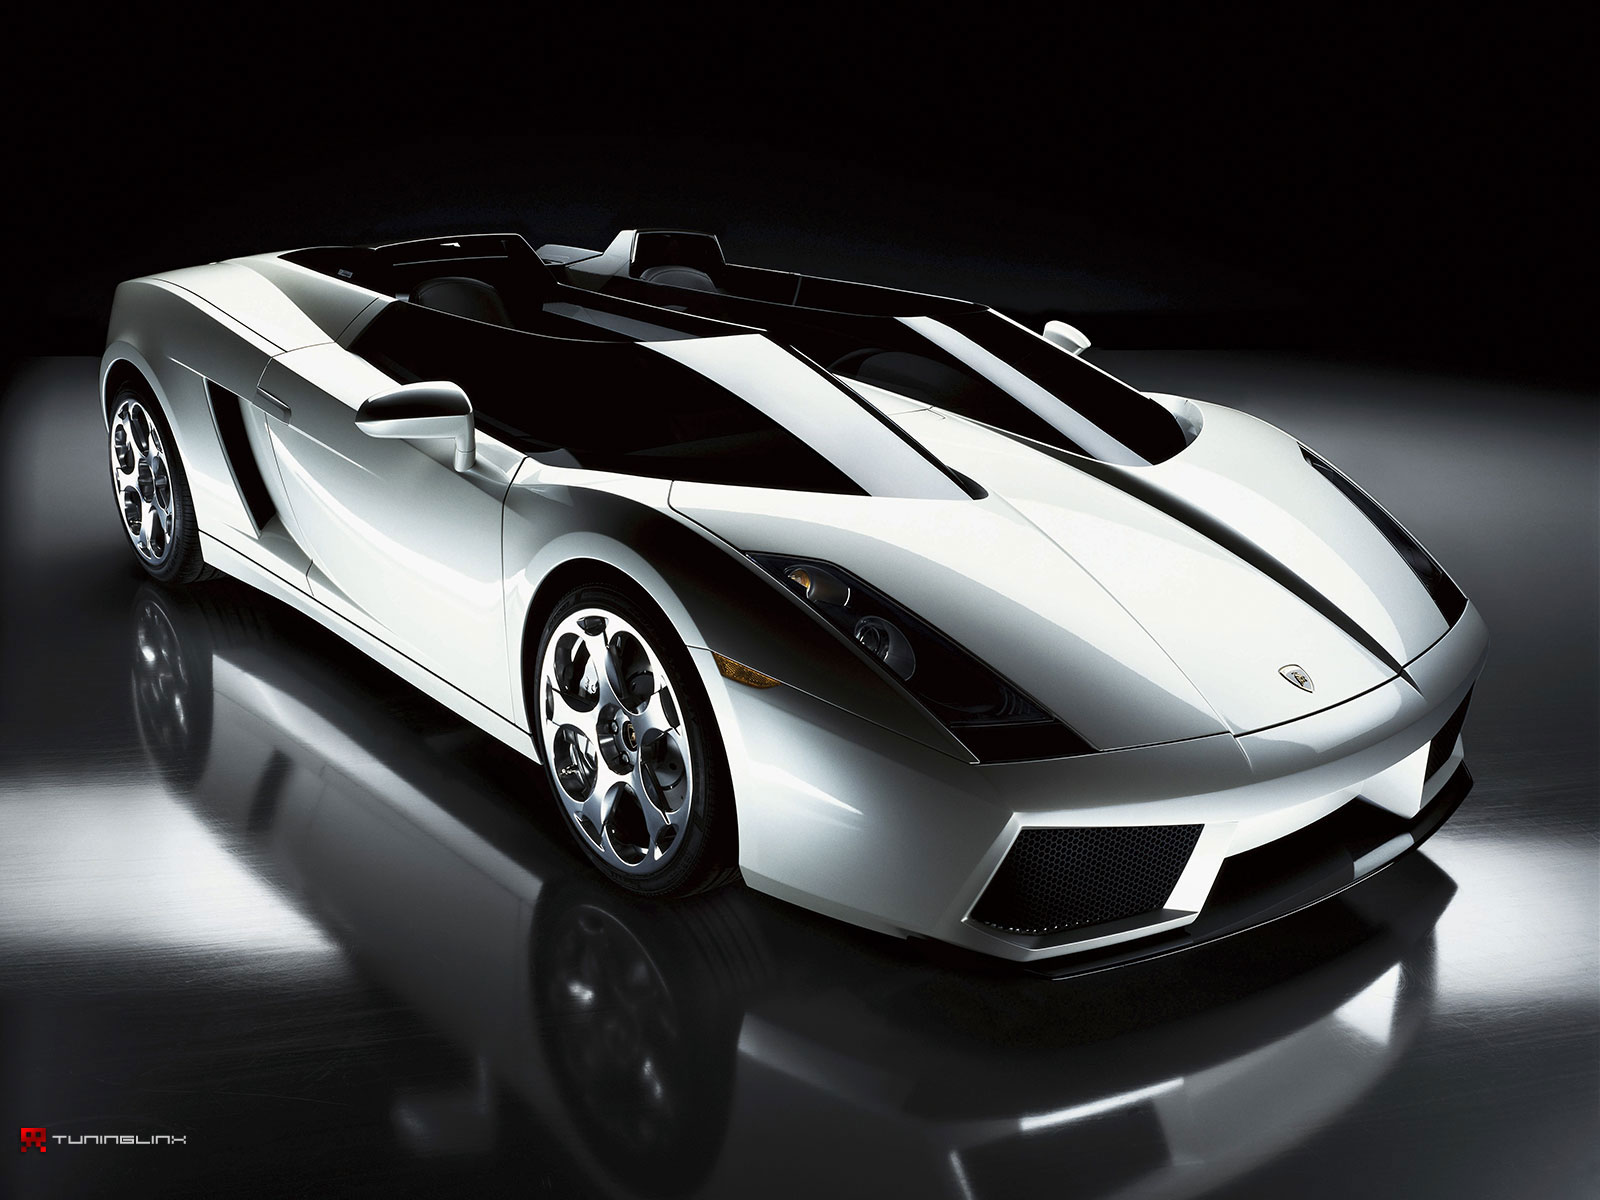 lamborghini car wallpaper hd lamborghini car wallpaper hd lamborghini 1600x1200